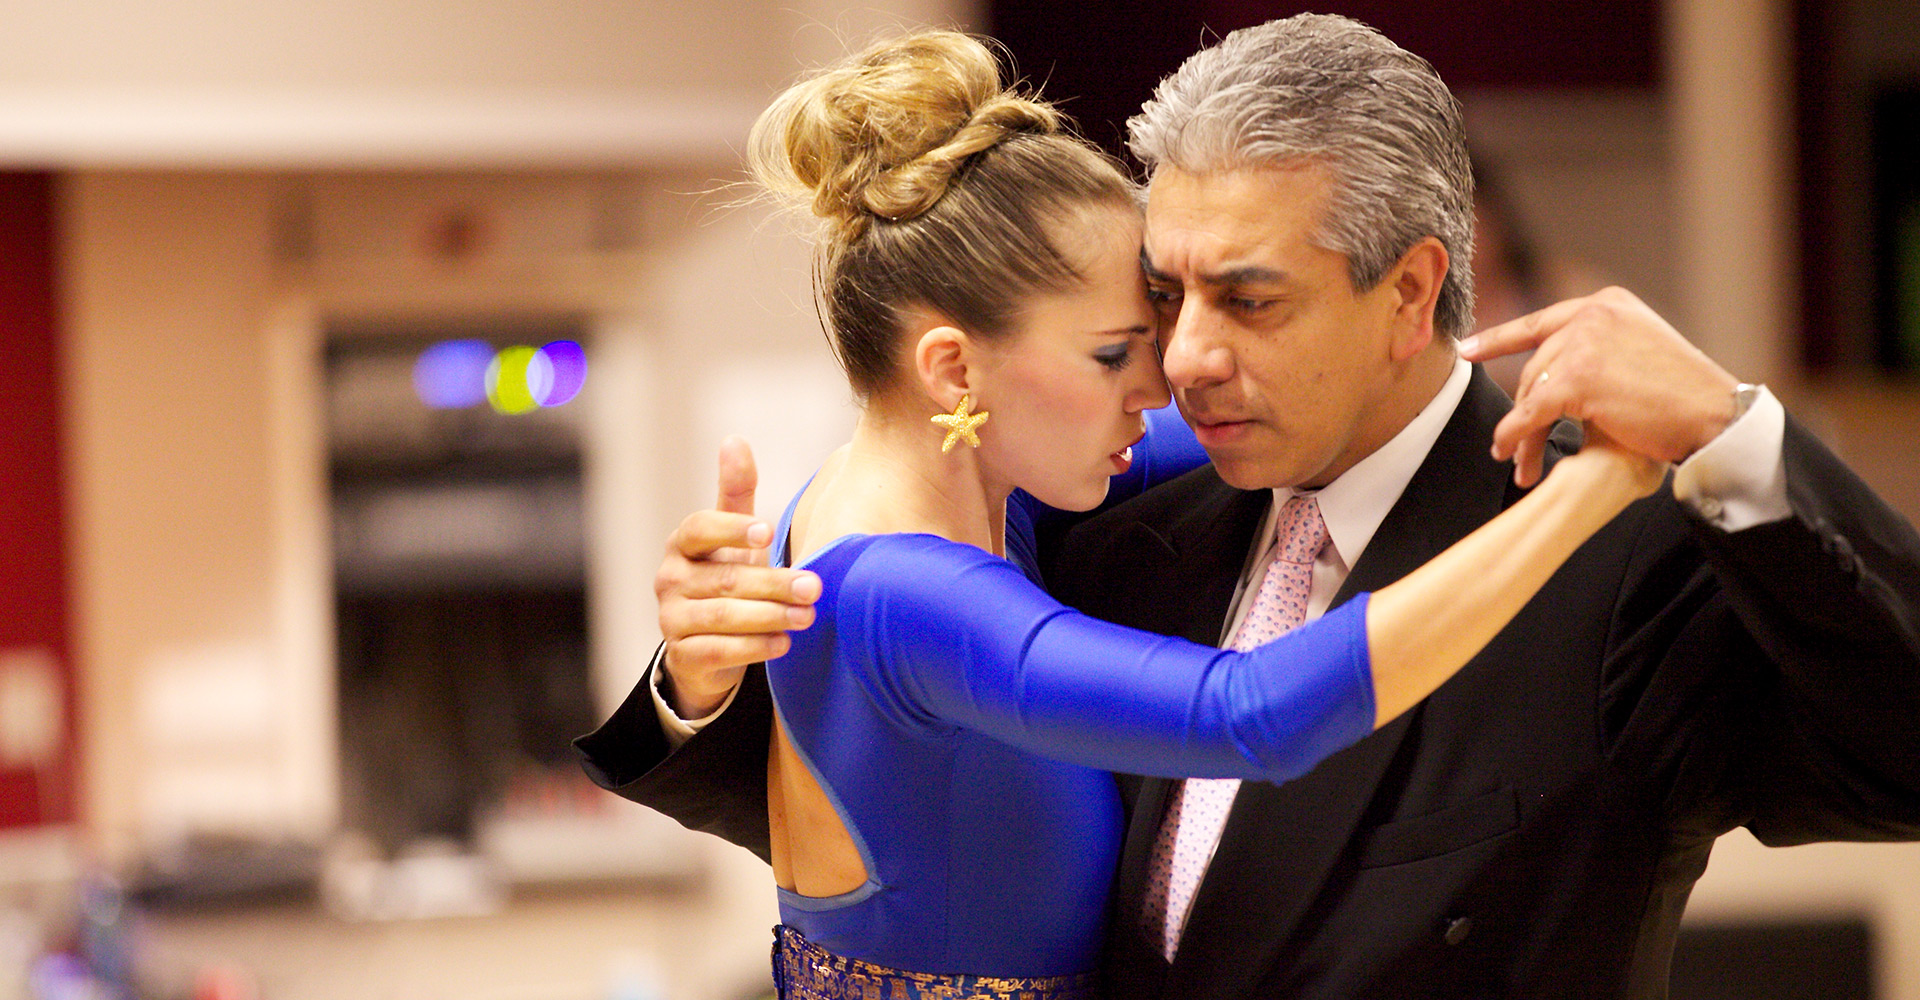 Jorge Torres and Maria Blanco - Dancing Argentine Tango